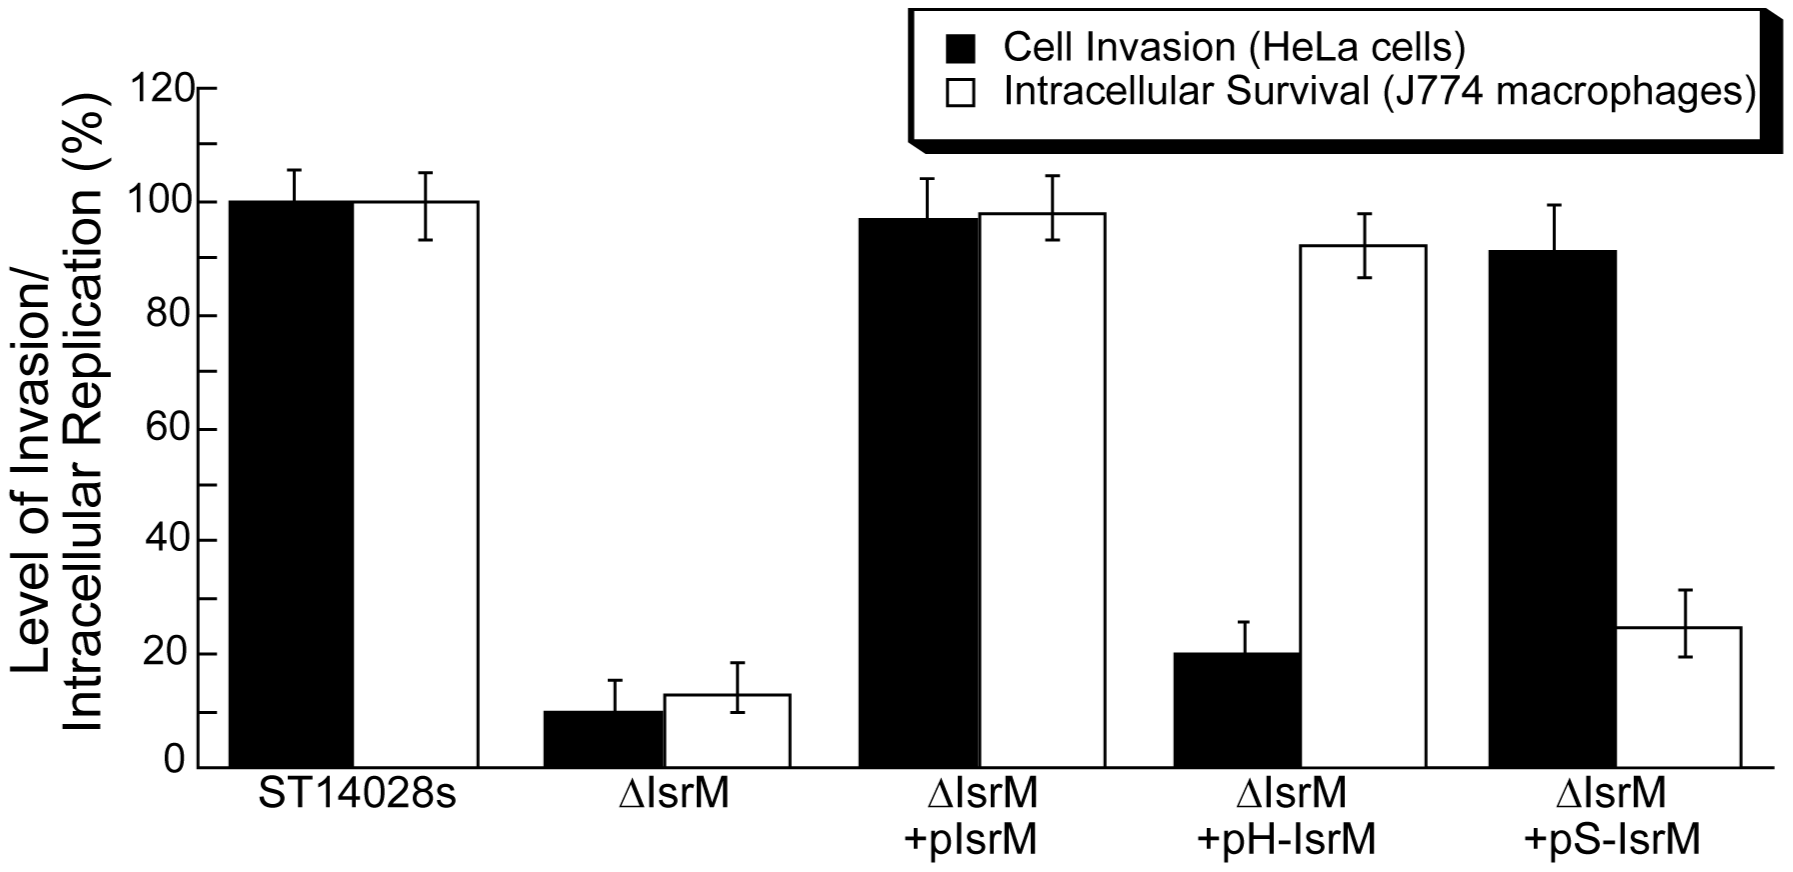 Epithelial cell invasion and intracellular replication in macrophages.